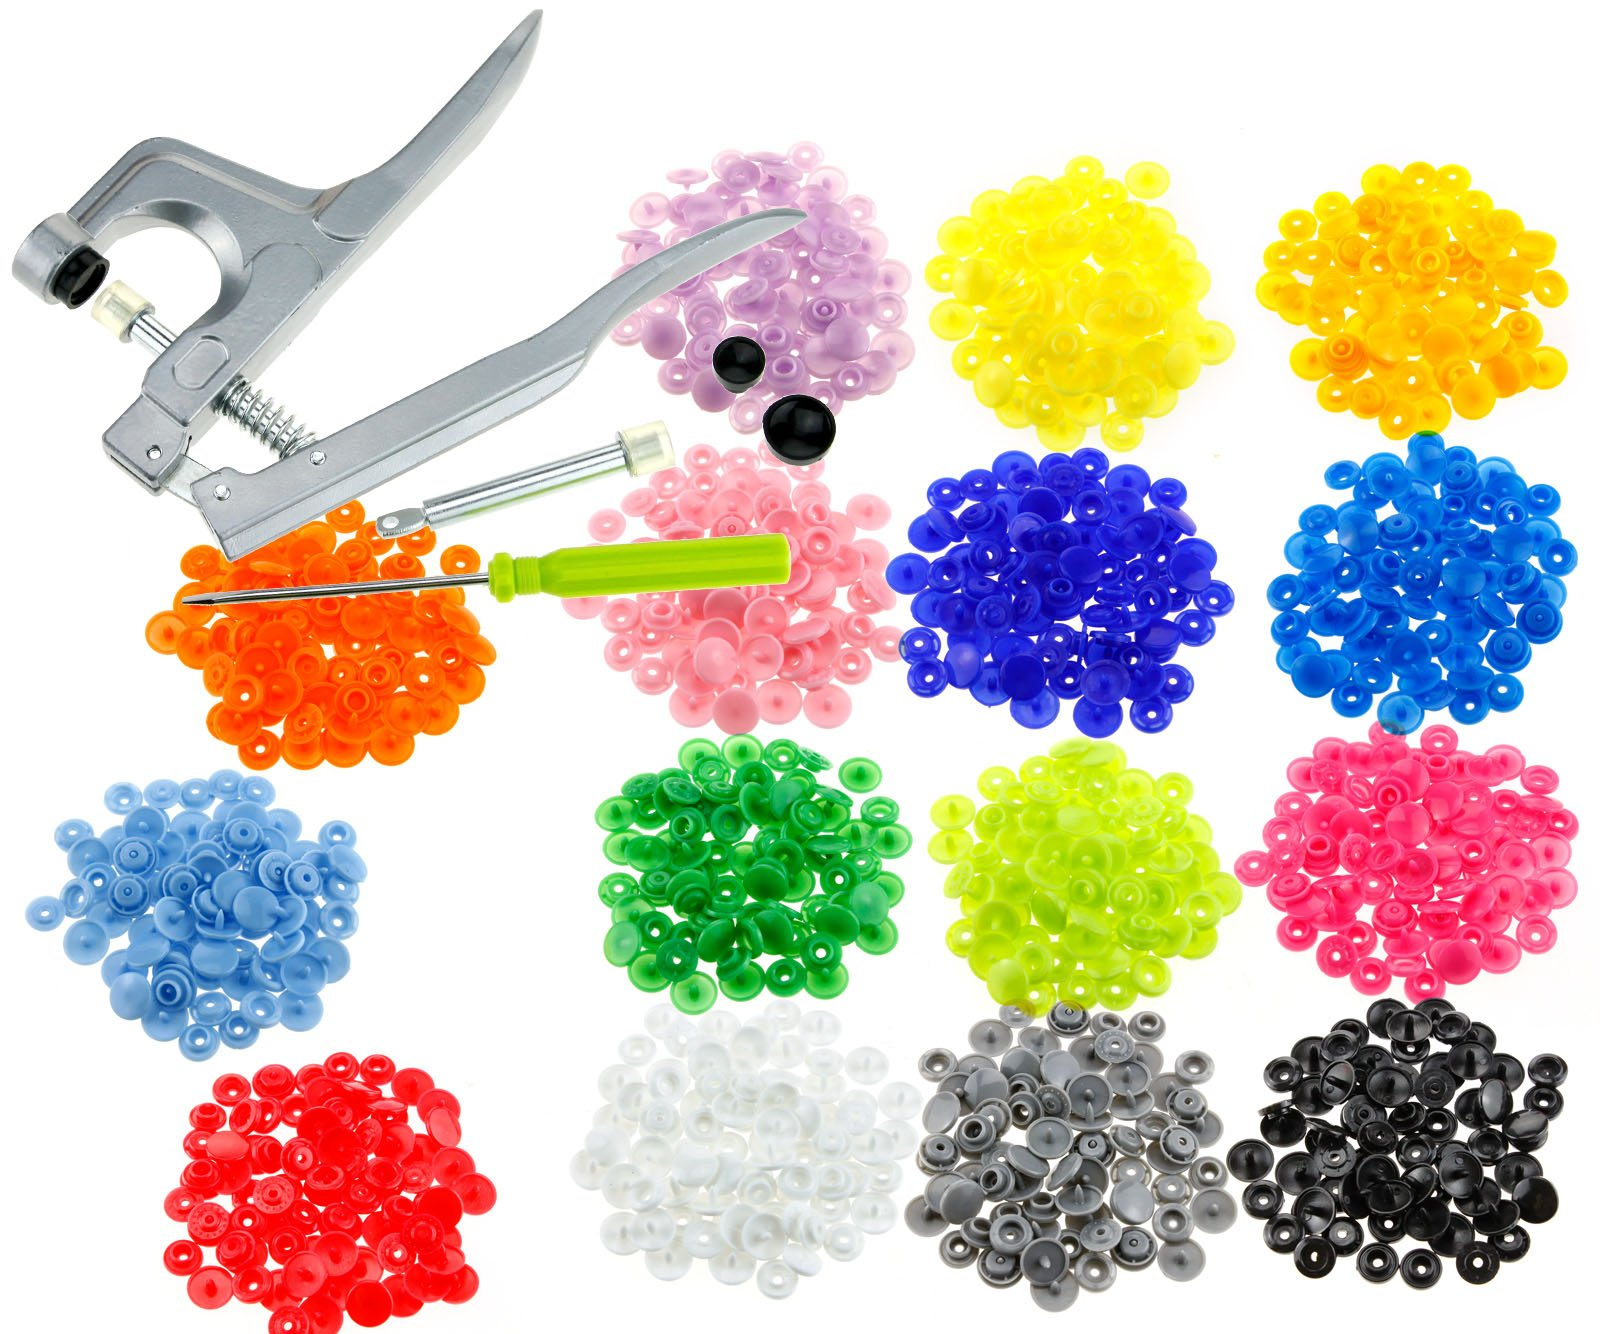 Snap Plier Fastener 150 Set Plastic Button Press Stud for Cloth Baby Bib Diaper by AnOs-HandTools